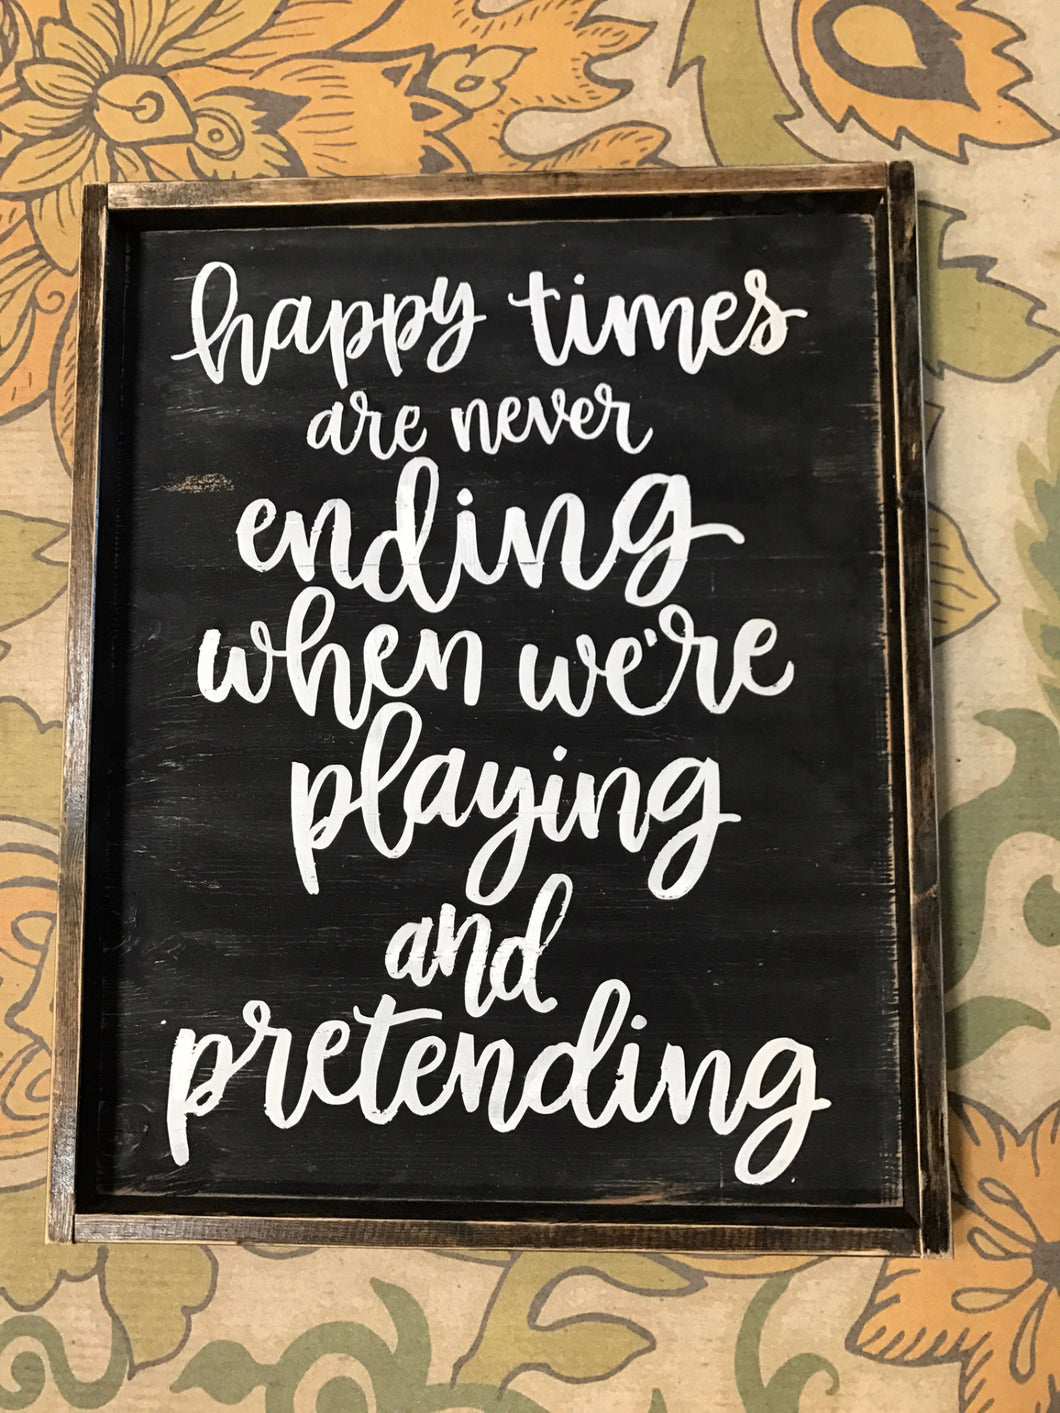 Happy times are never ending